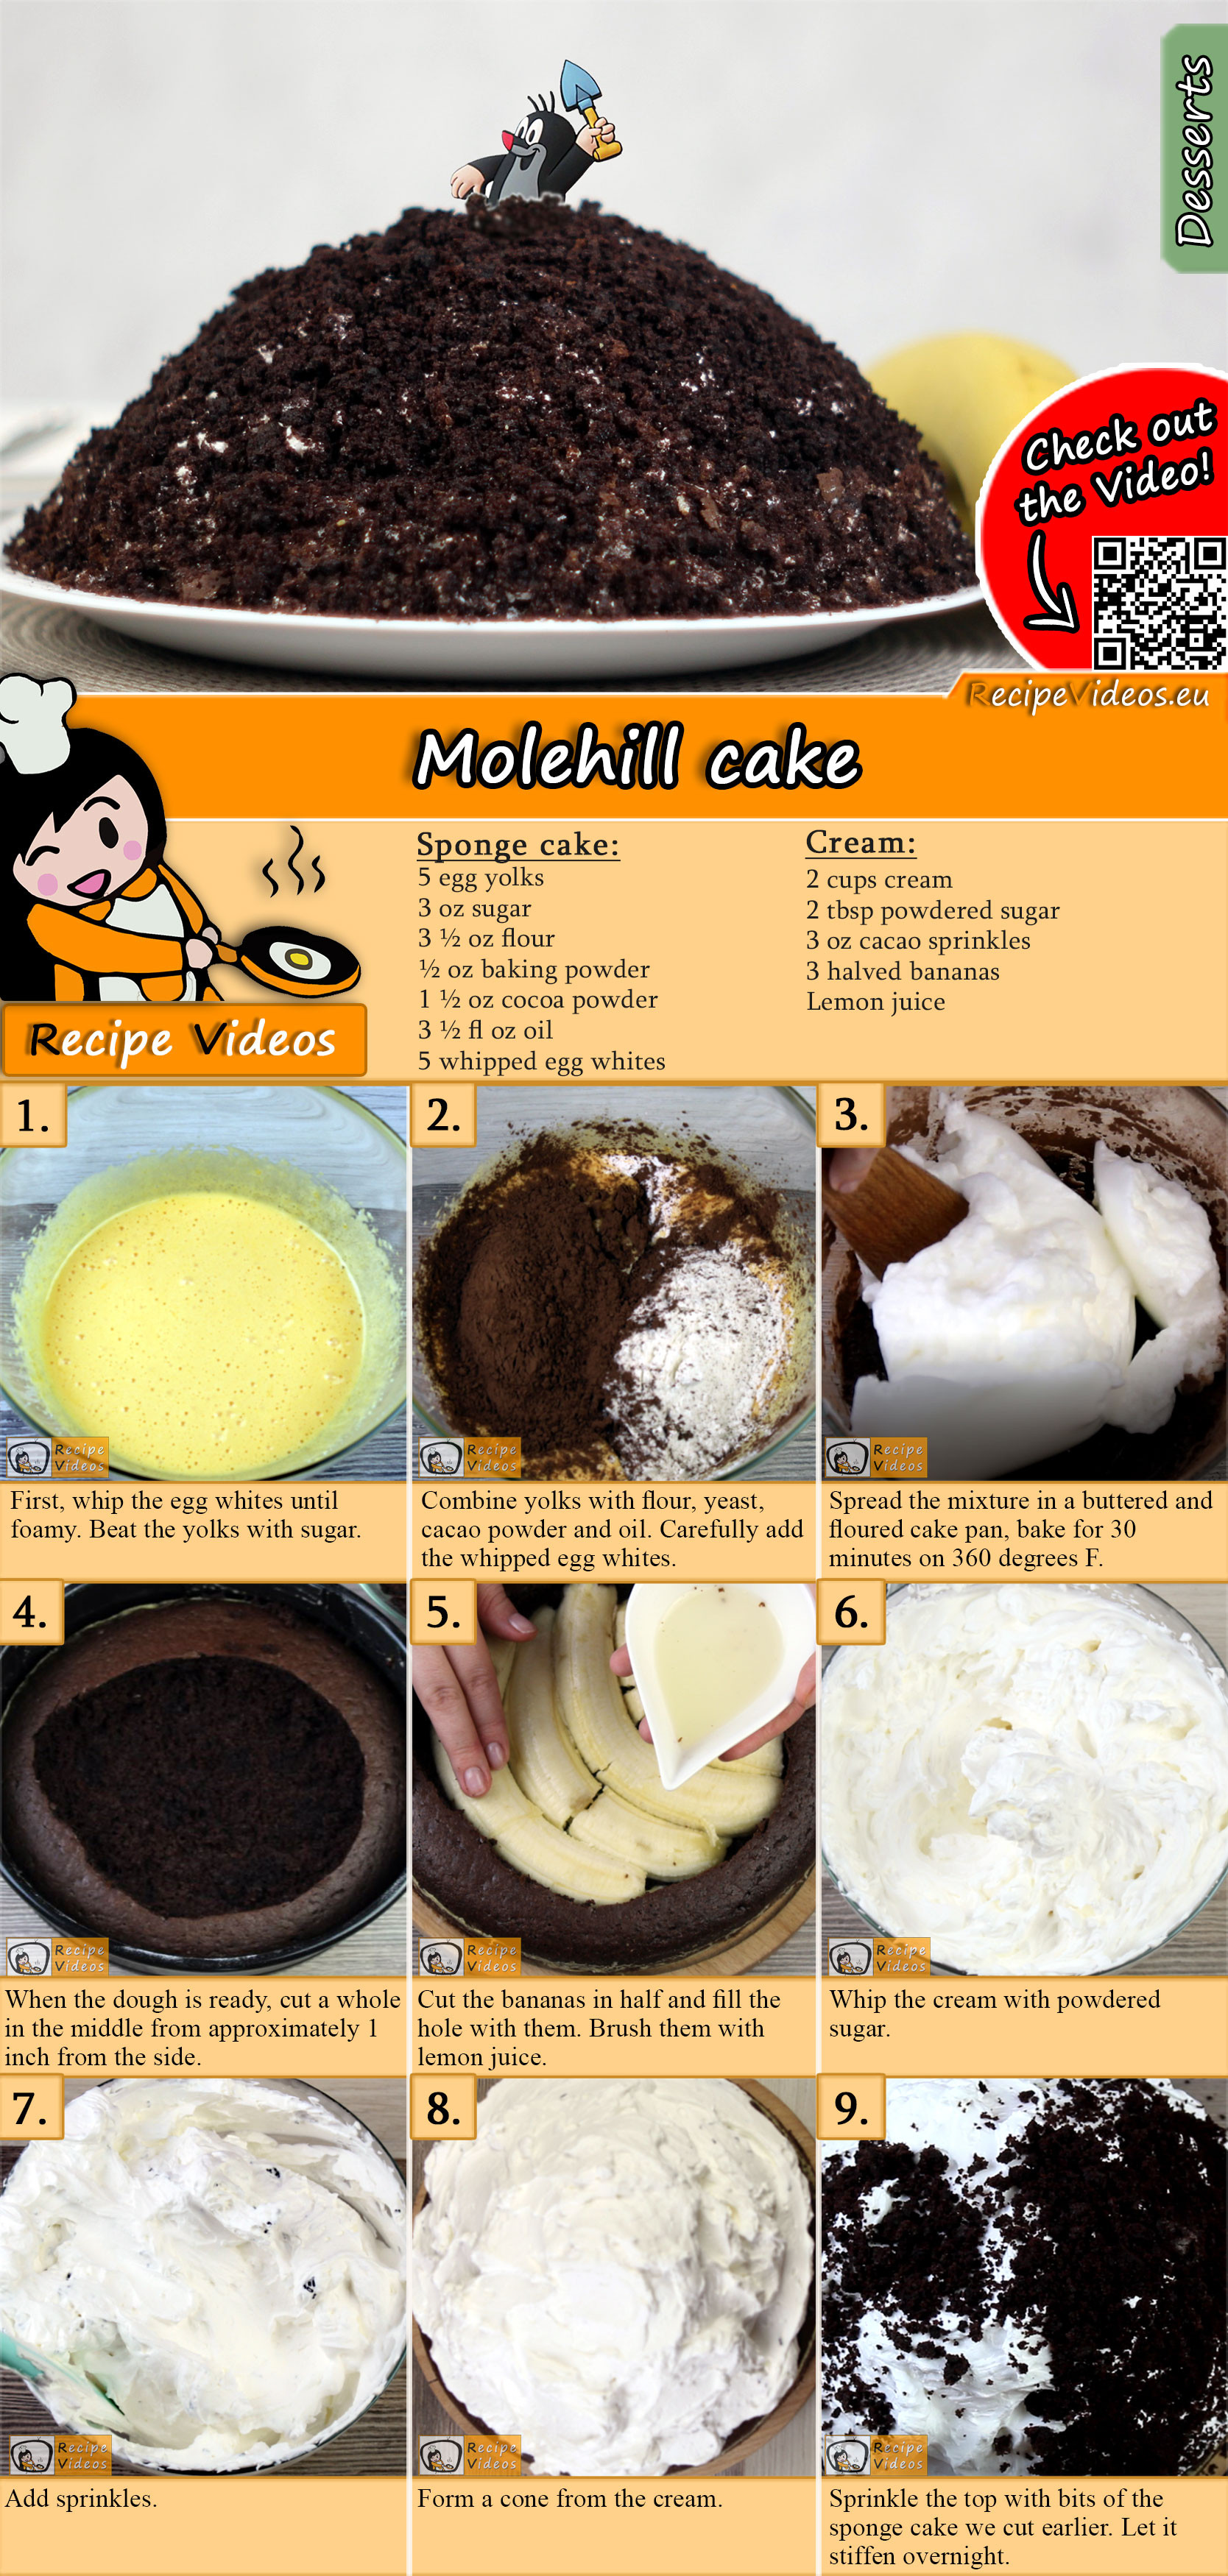 Molehill cake recipe with video